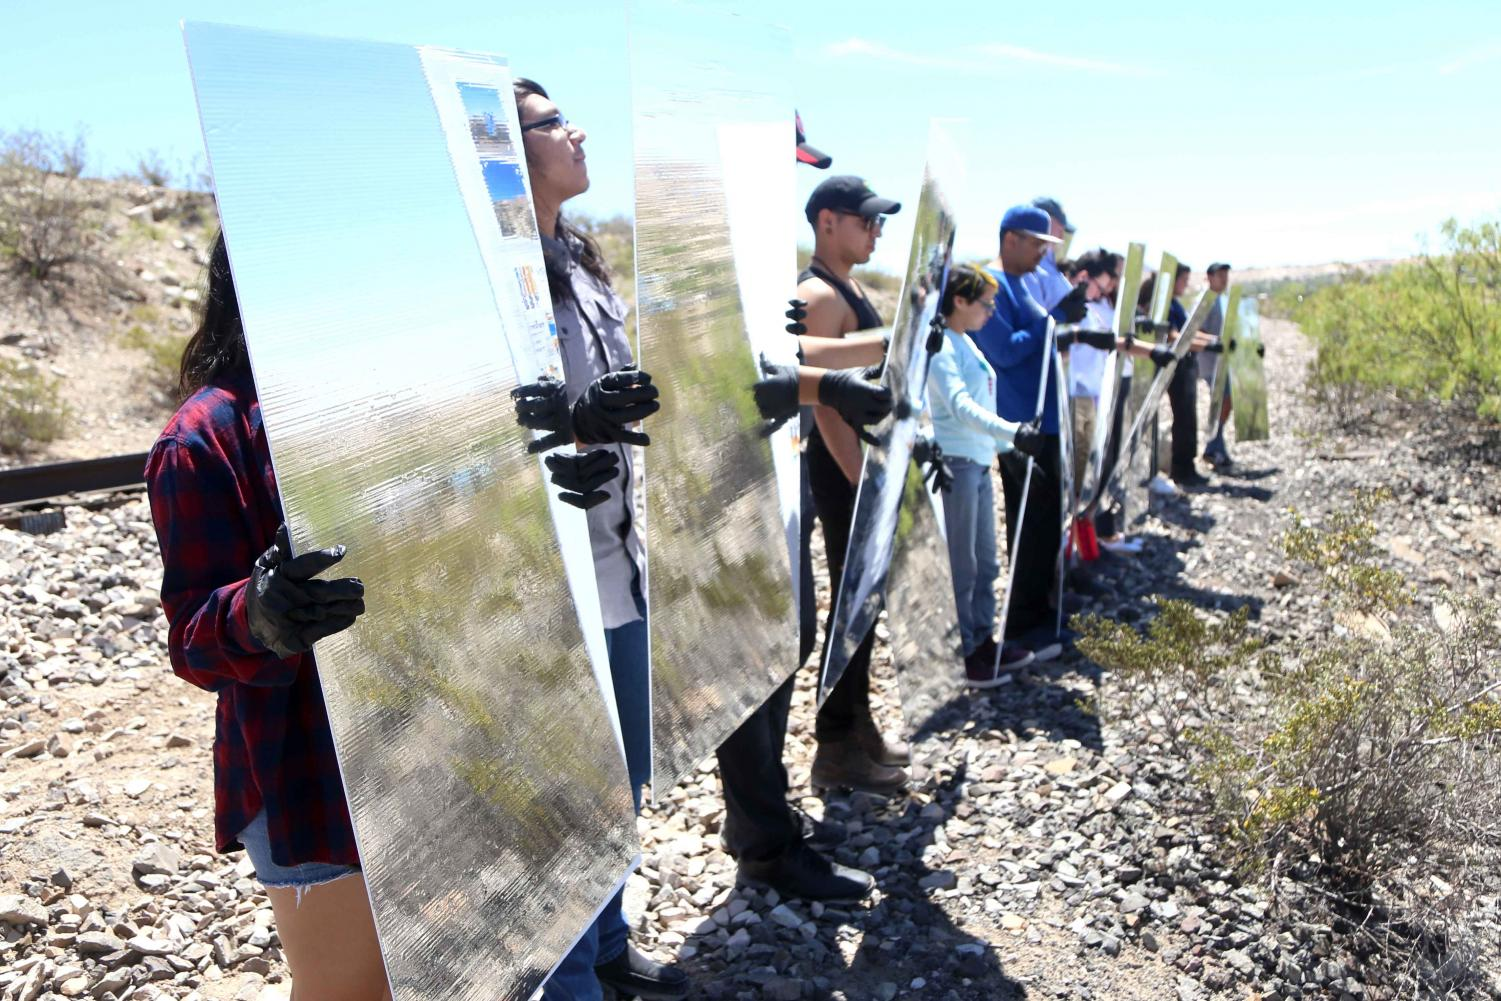 (Left) Volunteers from the El Paso and Las Cruces region hold Mylar mirror panels at Ardovino's Desert Crossing on Saturday, April 31. (Right) Artist Steven Randall instructs the volunteers on where to stand to create the mirage.